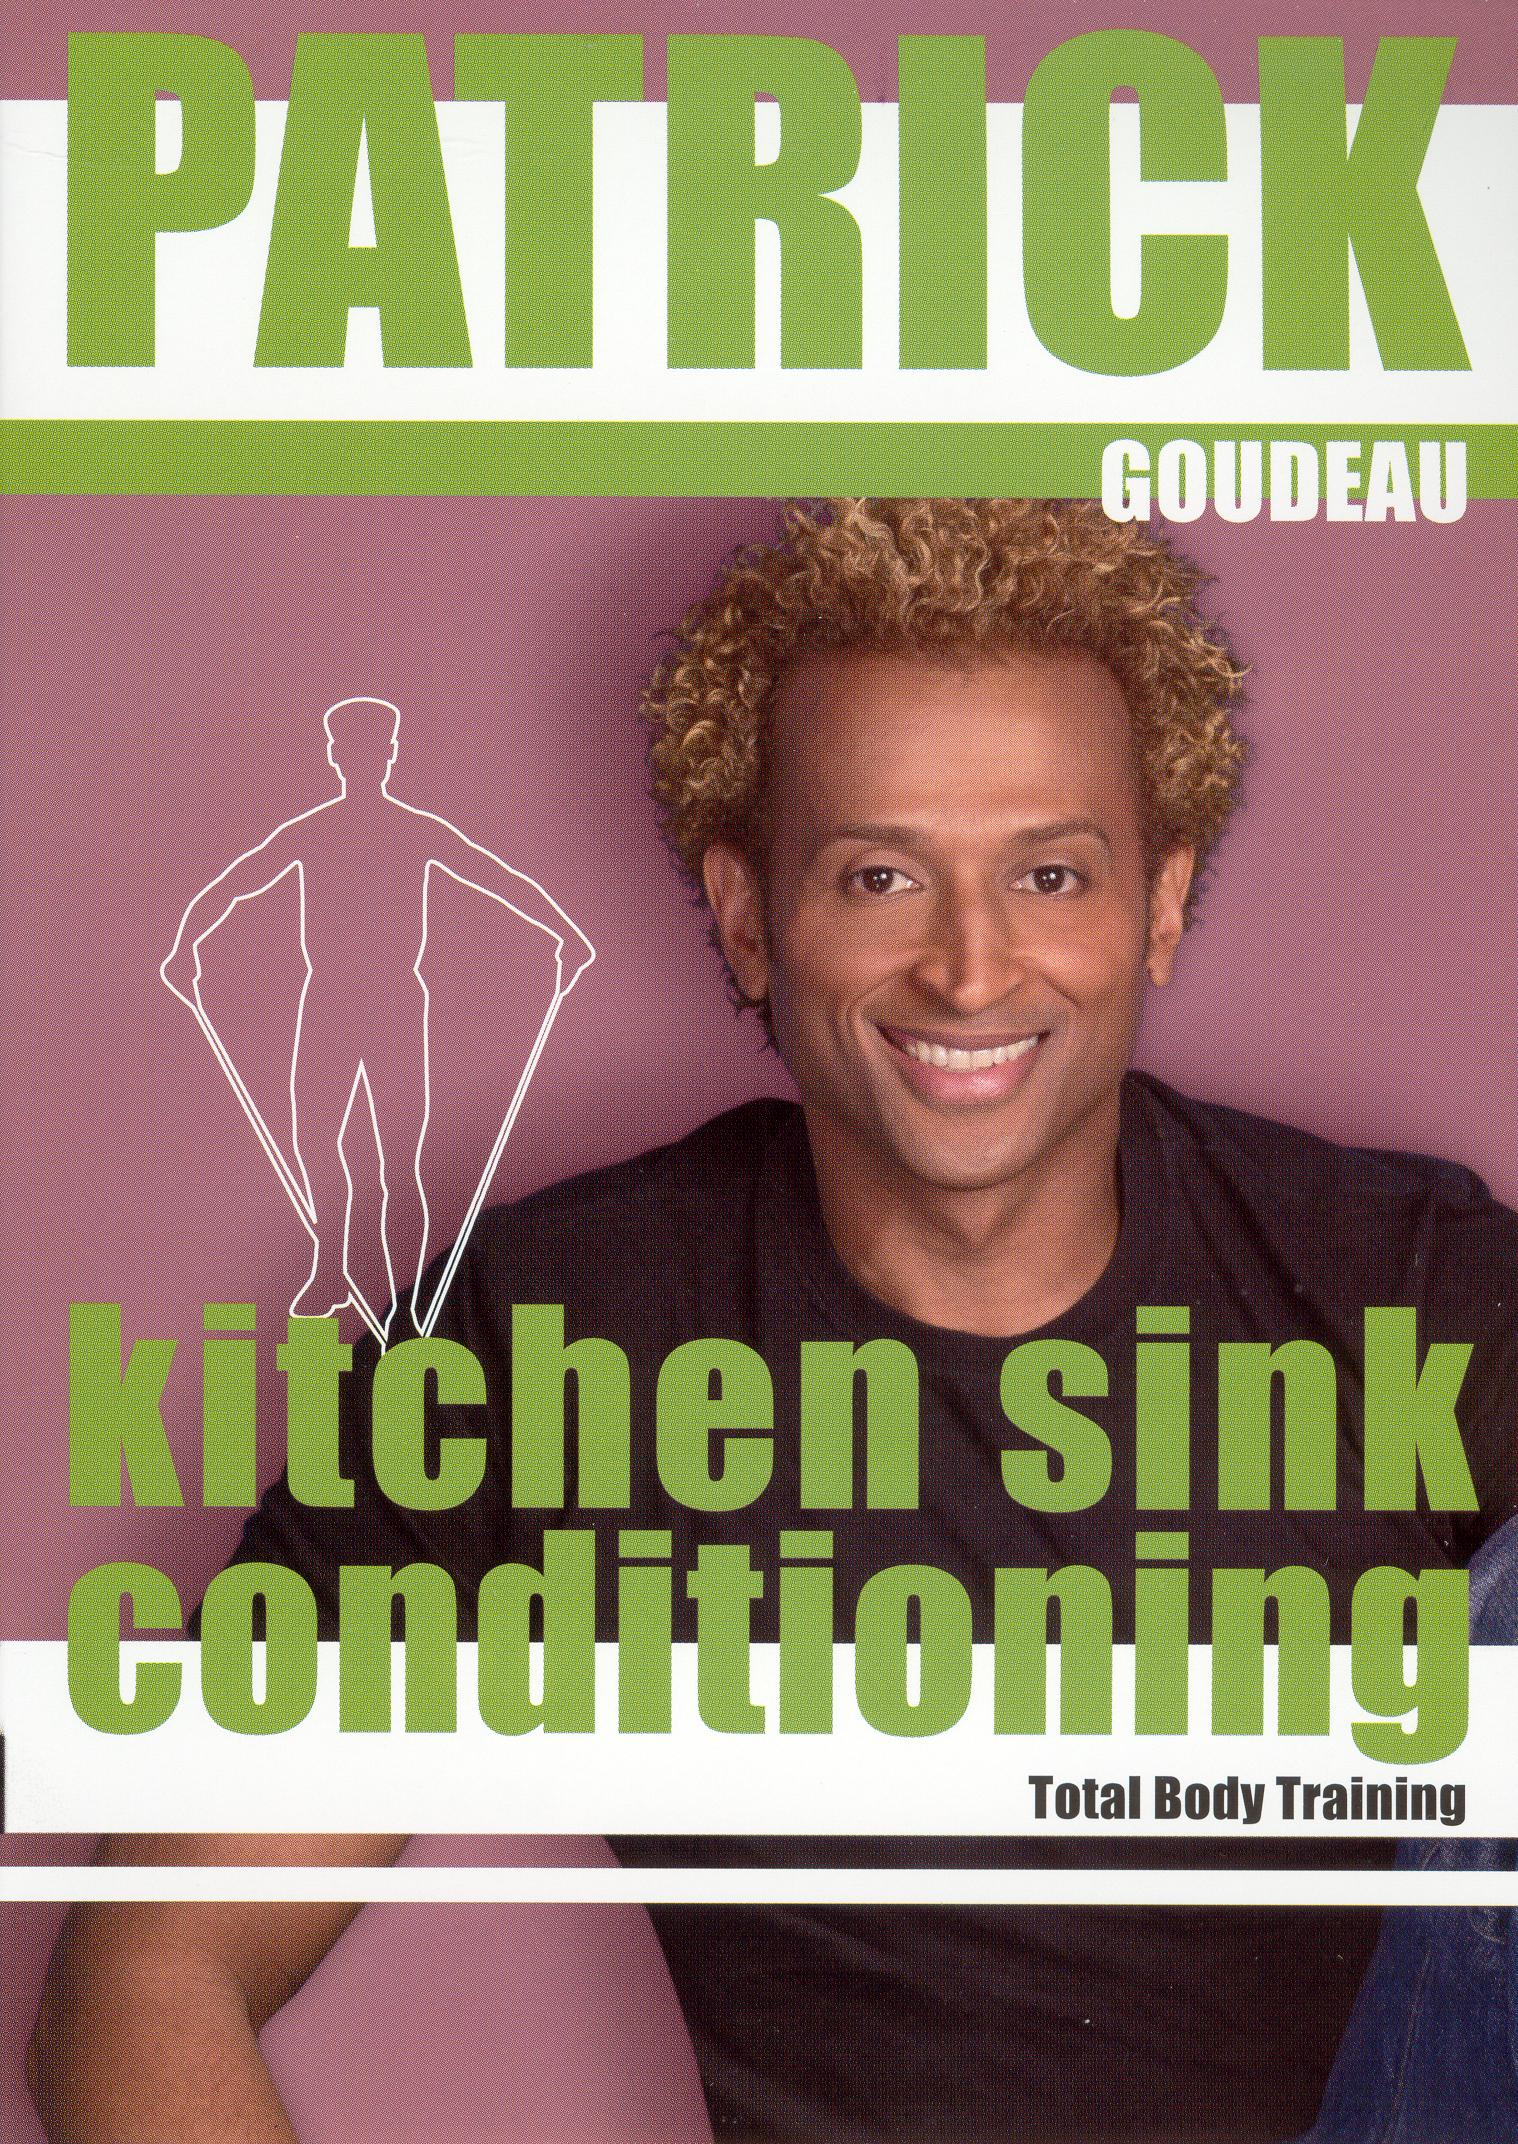 Patrick Goudeau: Patrick's Kitchen Sink Conditioning